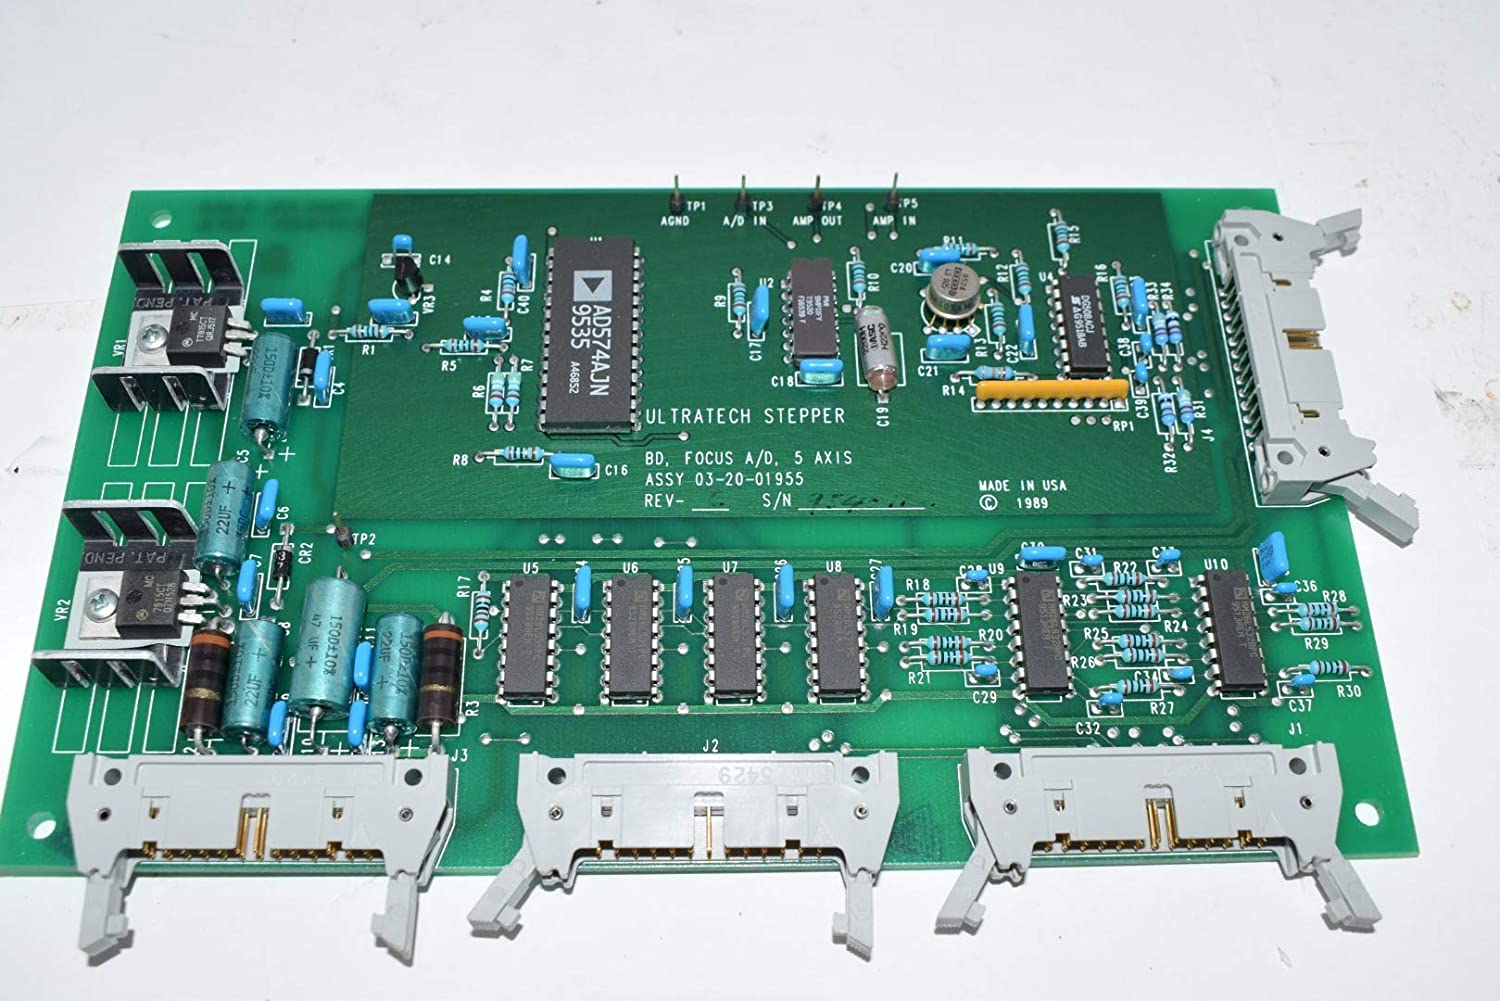 Ultratech Stepper 03-20-01955 Focus A/D 5 Axis PCB Assembly Rev. C 2244i